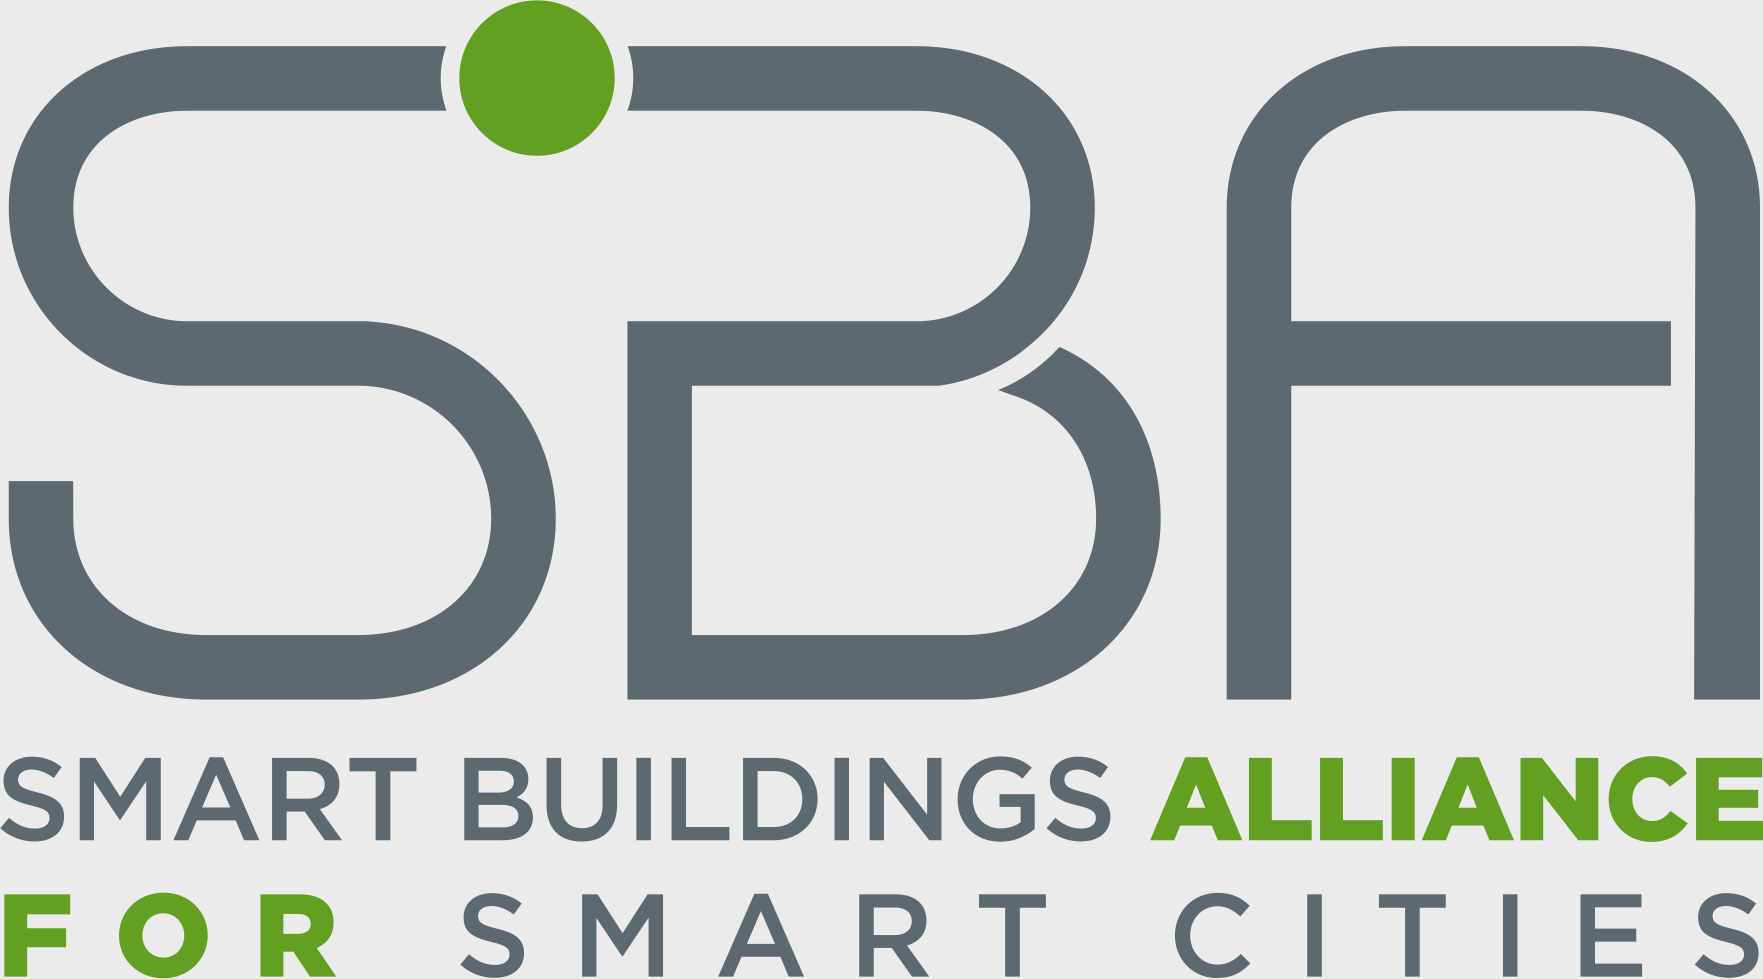 Smart Buildings Alliance